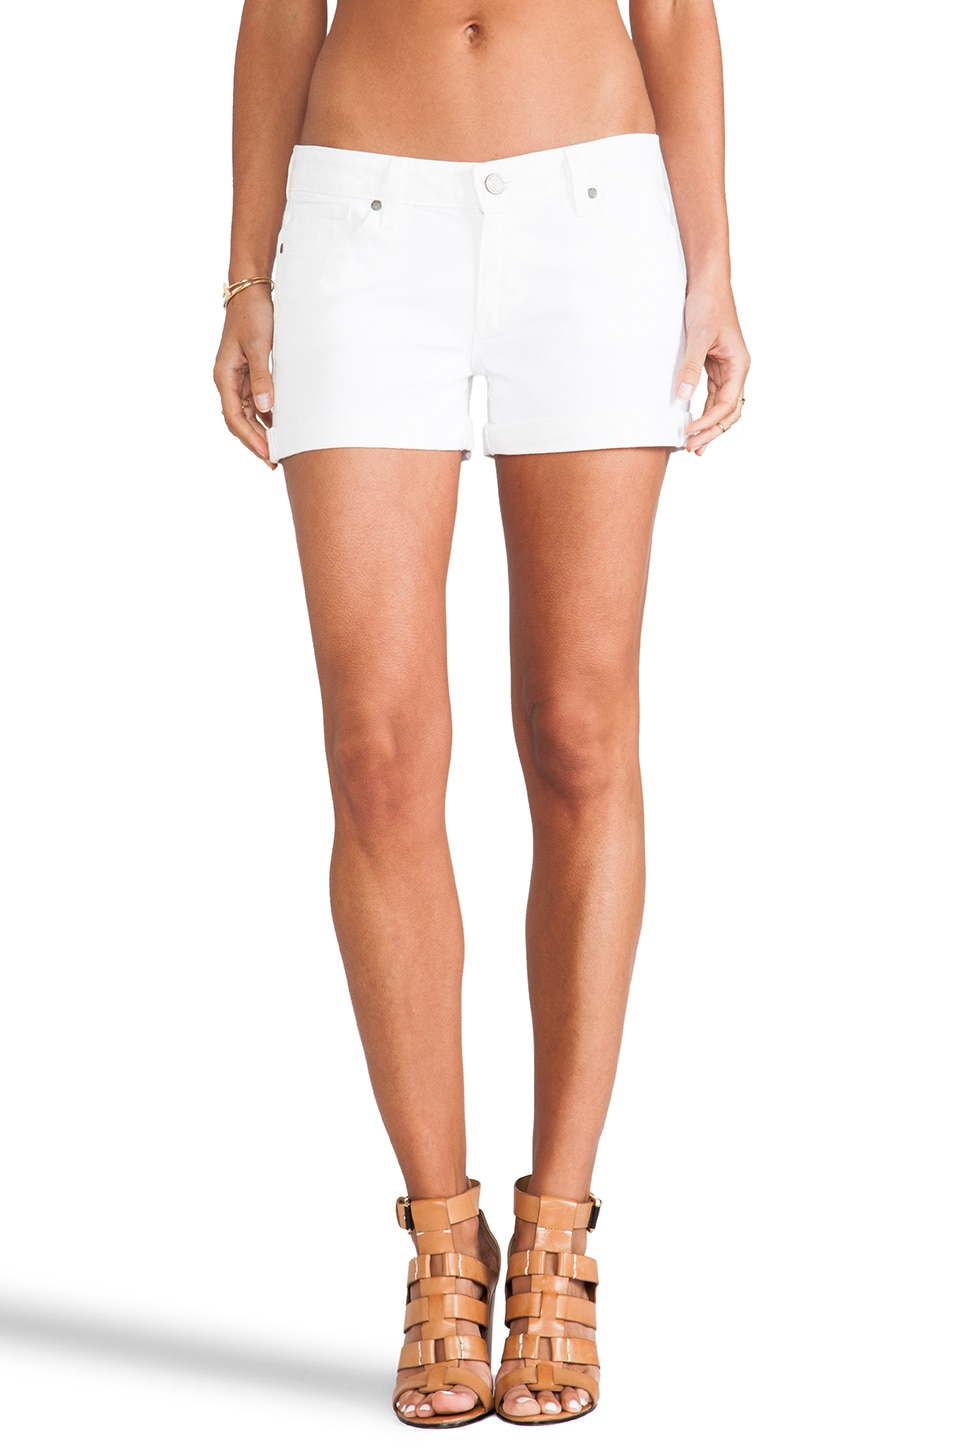 Paige Denim Jimmy Jimmy Short in White